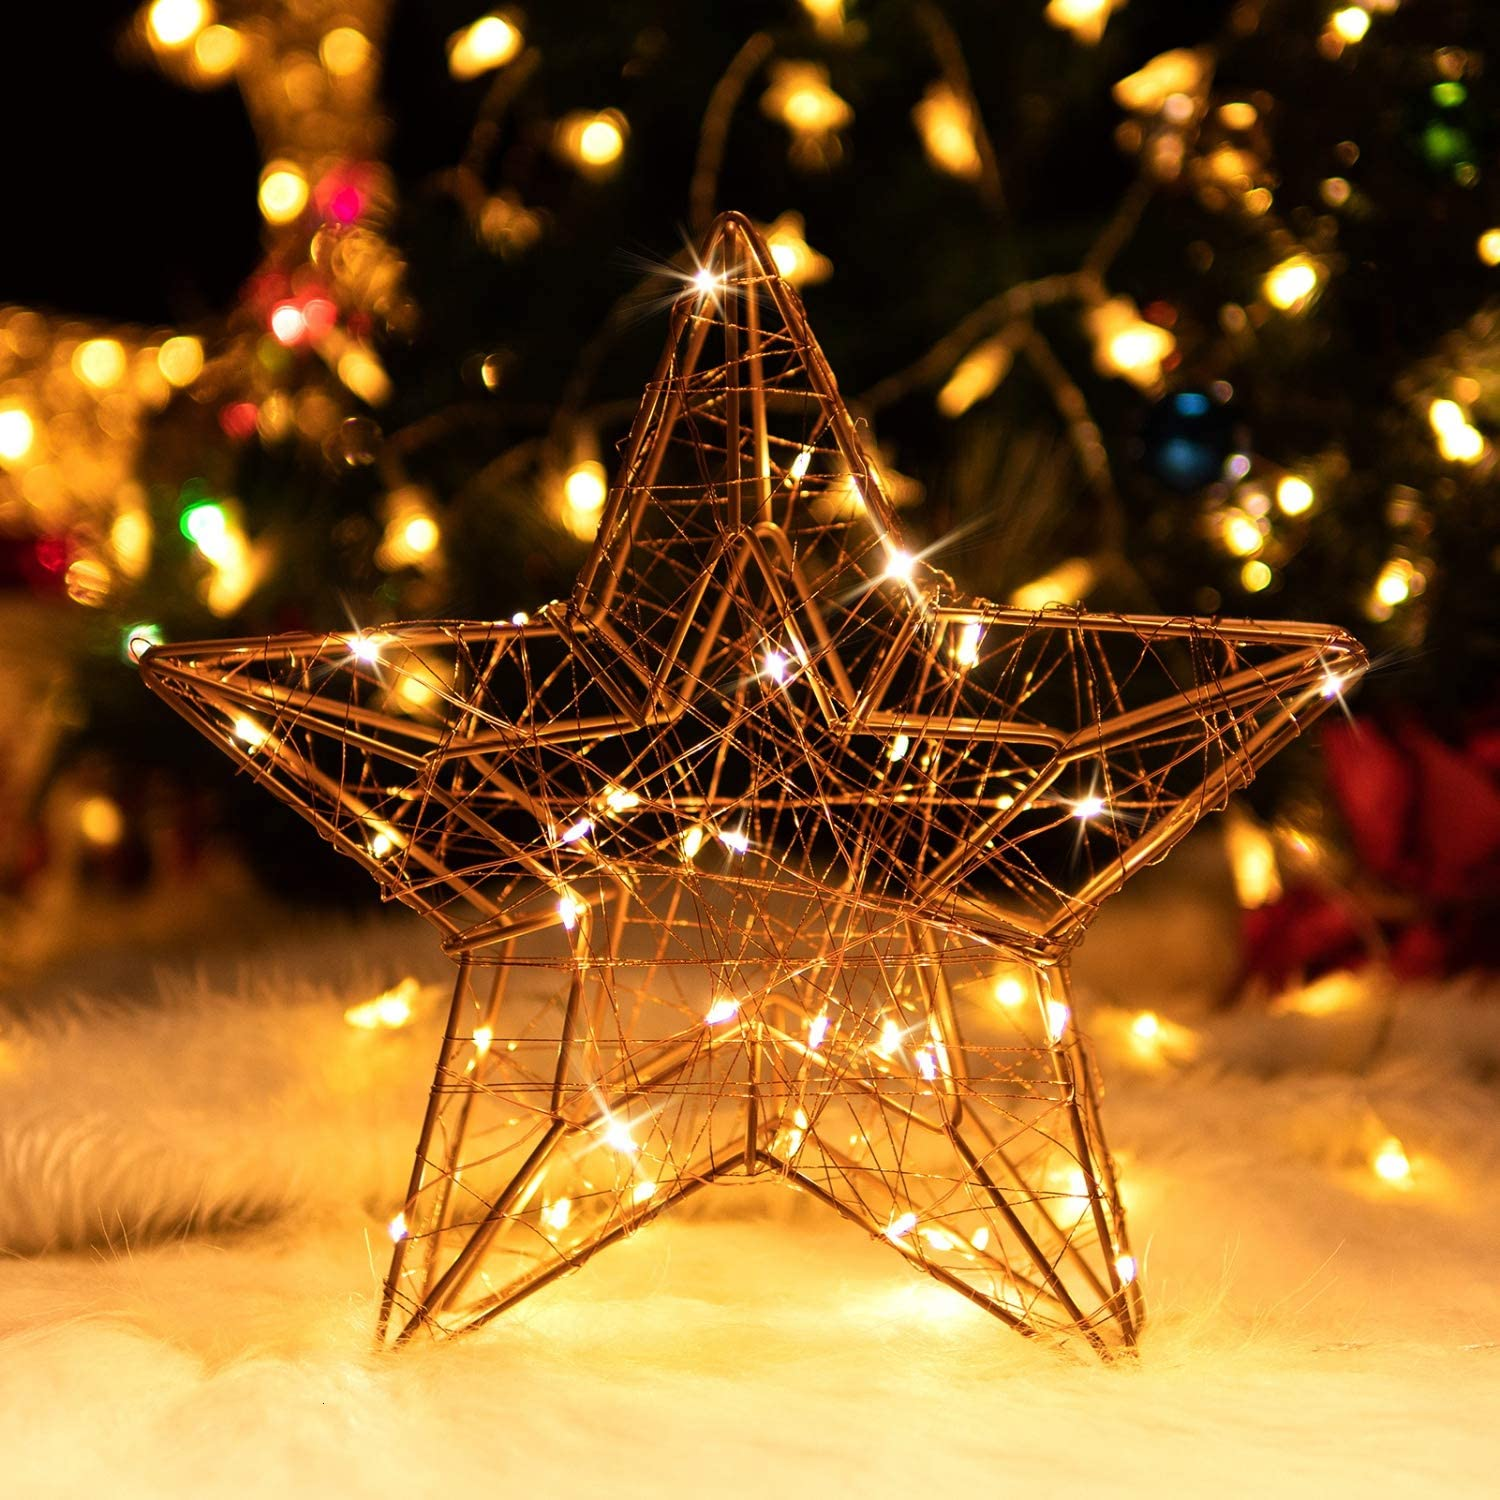 1 Pack Rocinha Lighted Christmas Decorations,Christmas Mantel Decorations,LED Star Shaped Lights,LED Decorative Light for Thanksgiving Christmas Holidays Home d/écor /& Ideal Gifts